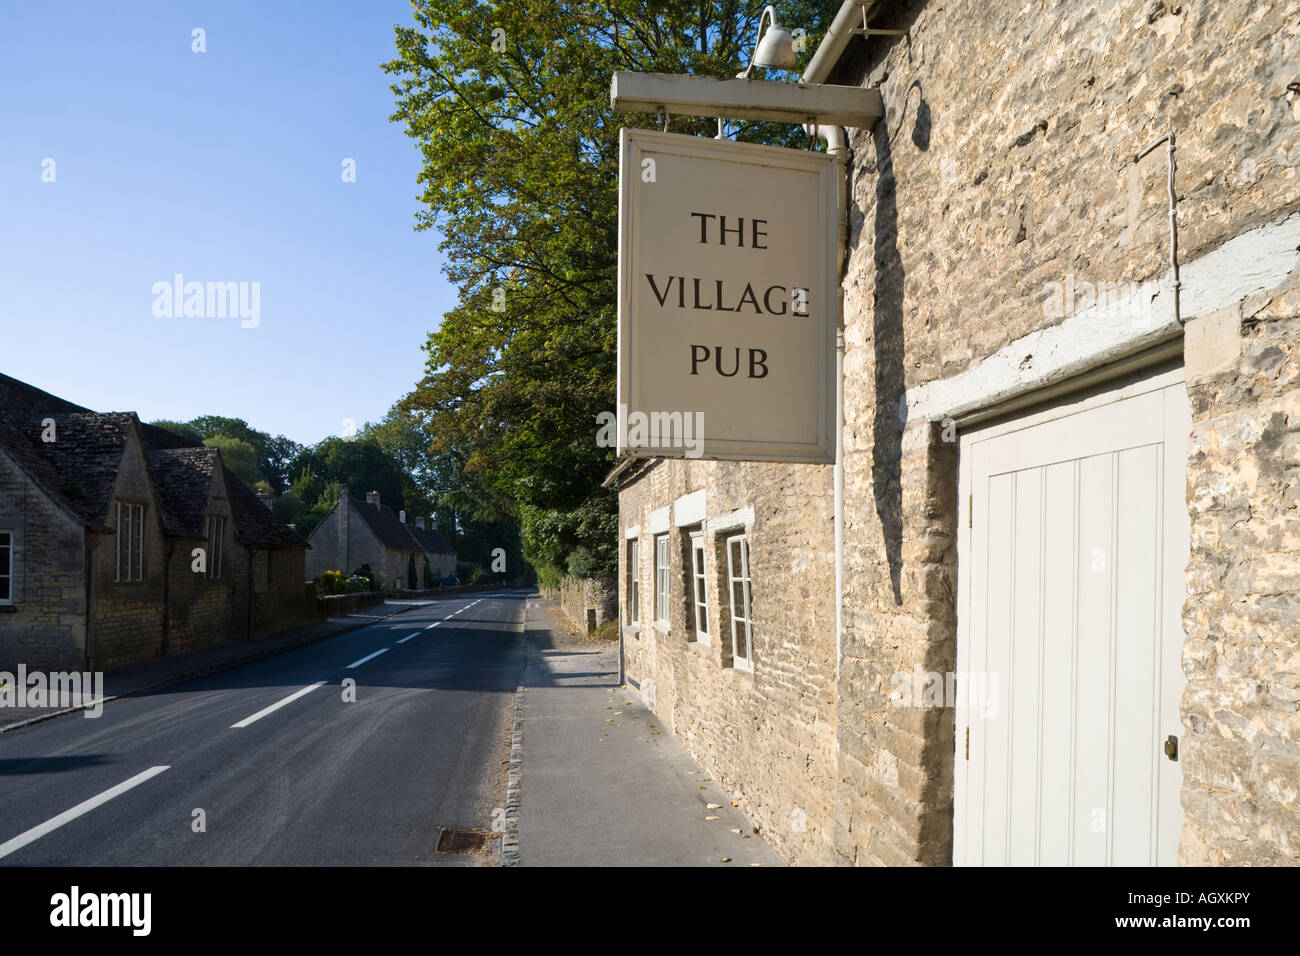 The Village Pub in the Cotswold village of Barnsley, Gloucestershire - Stock Image